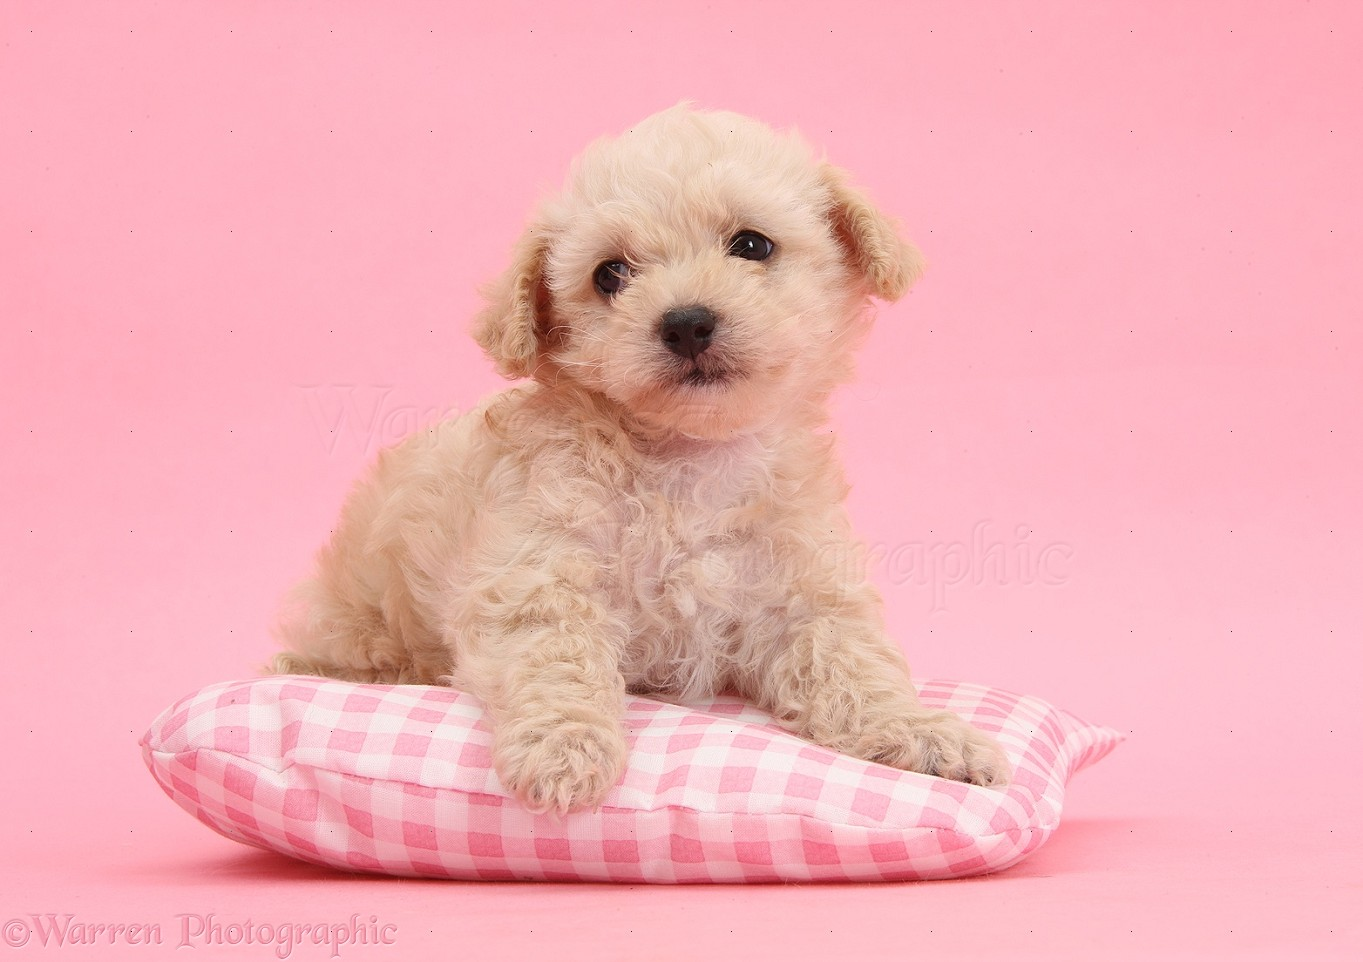 WP35558 Bichon Frisé x Yorkshire Terrier pup, 6 weeks old, lying on ...